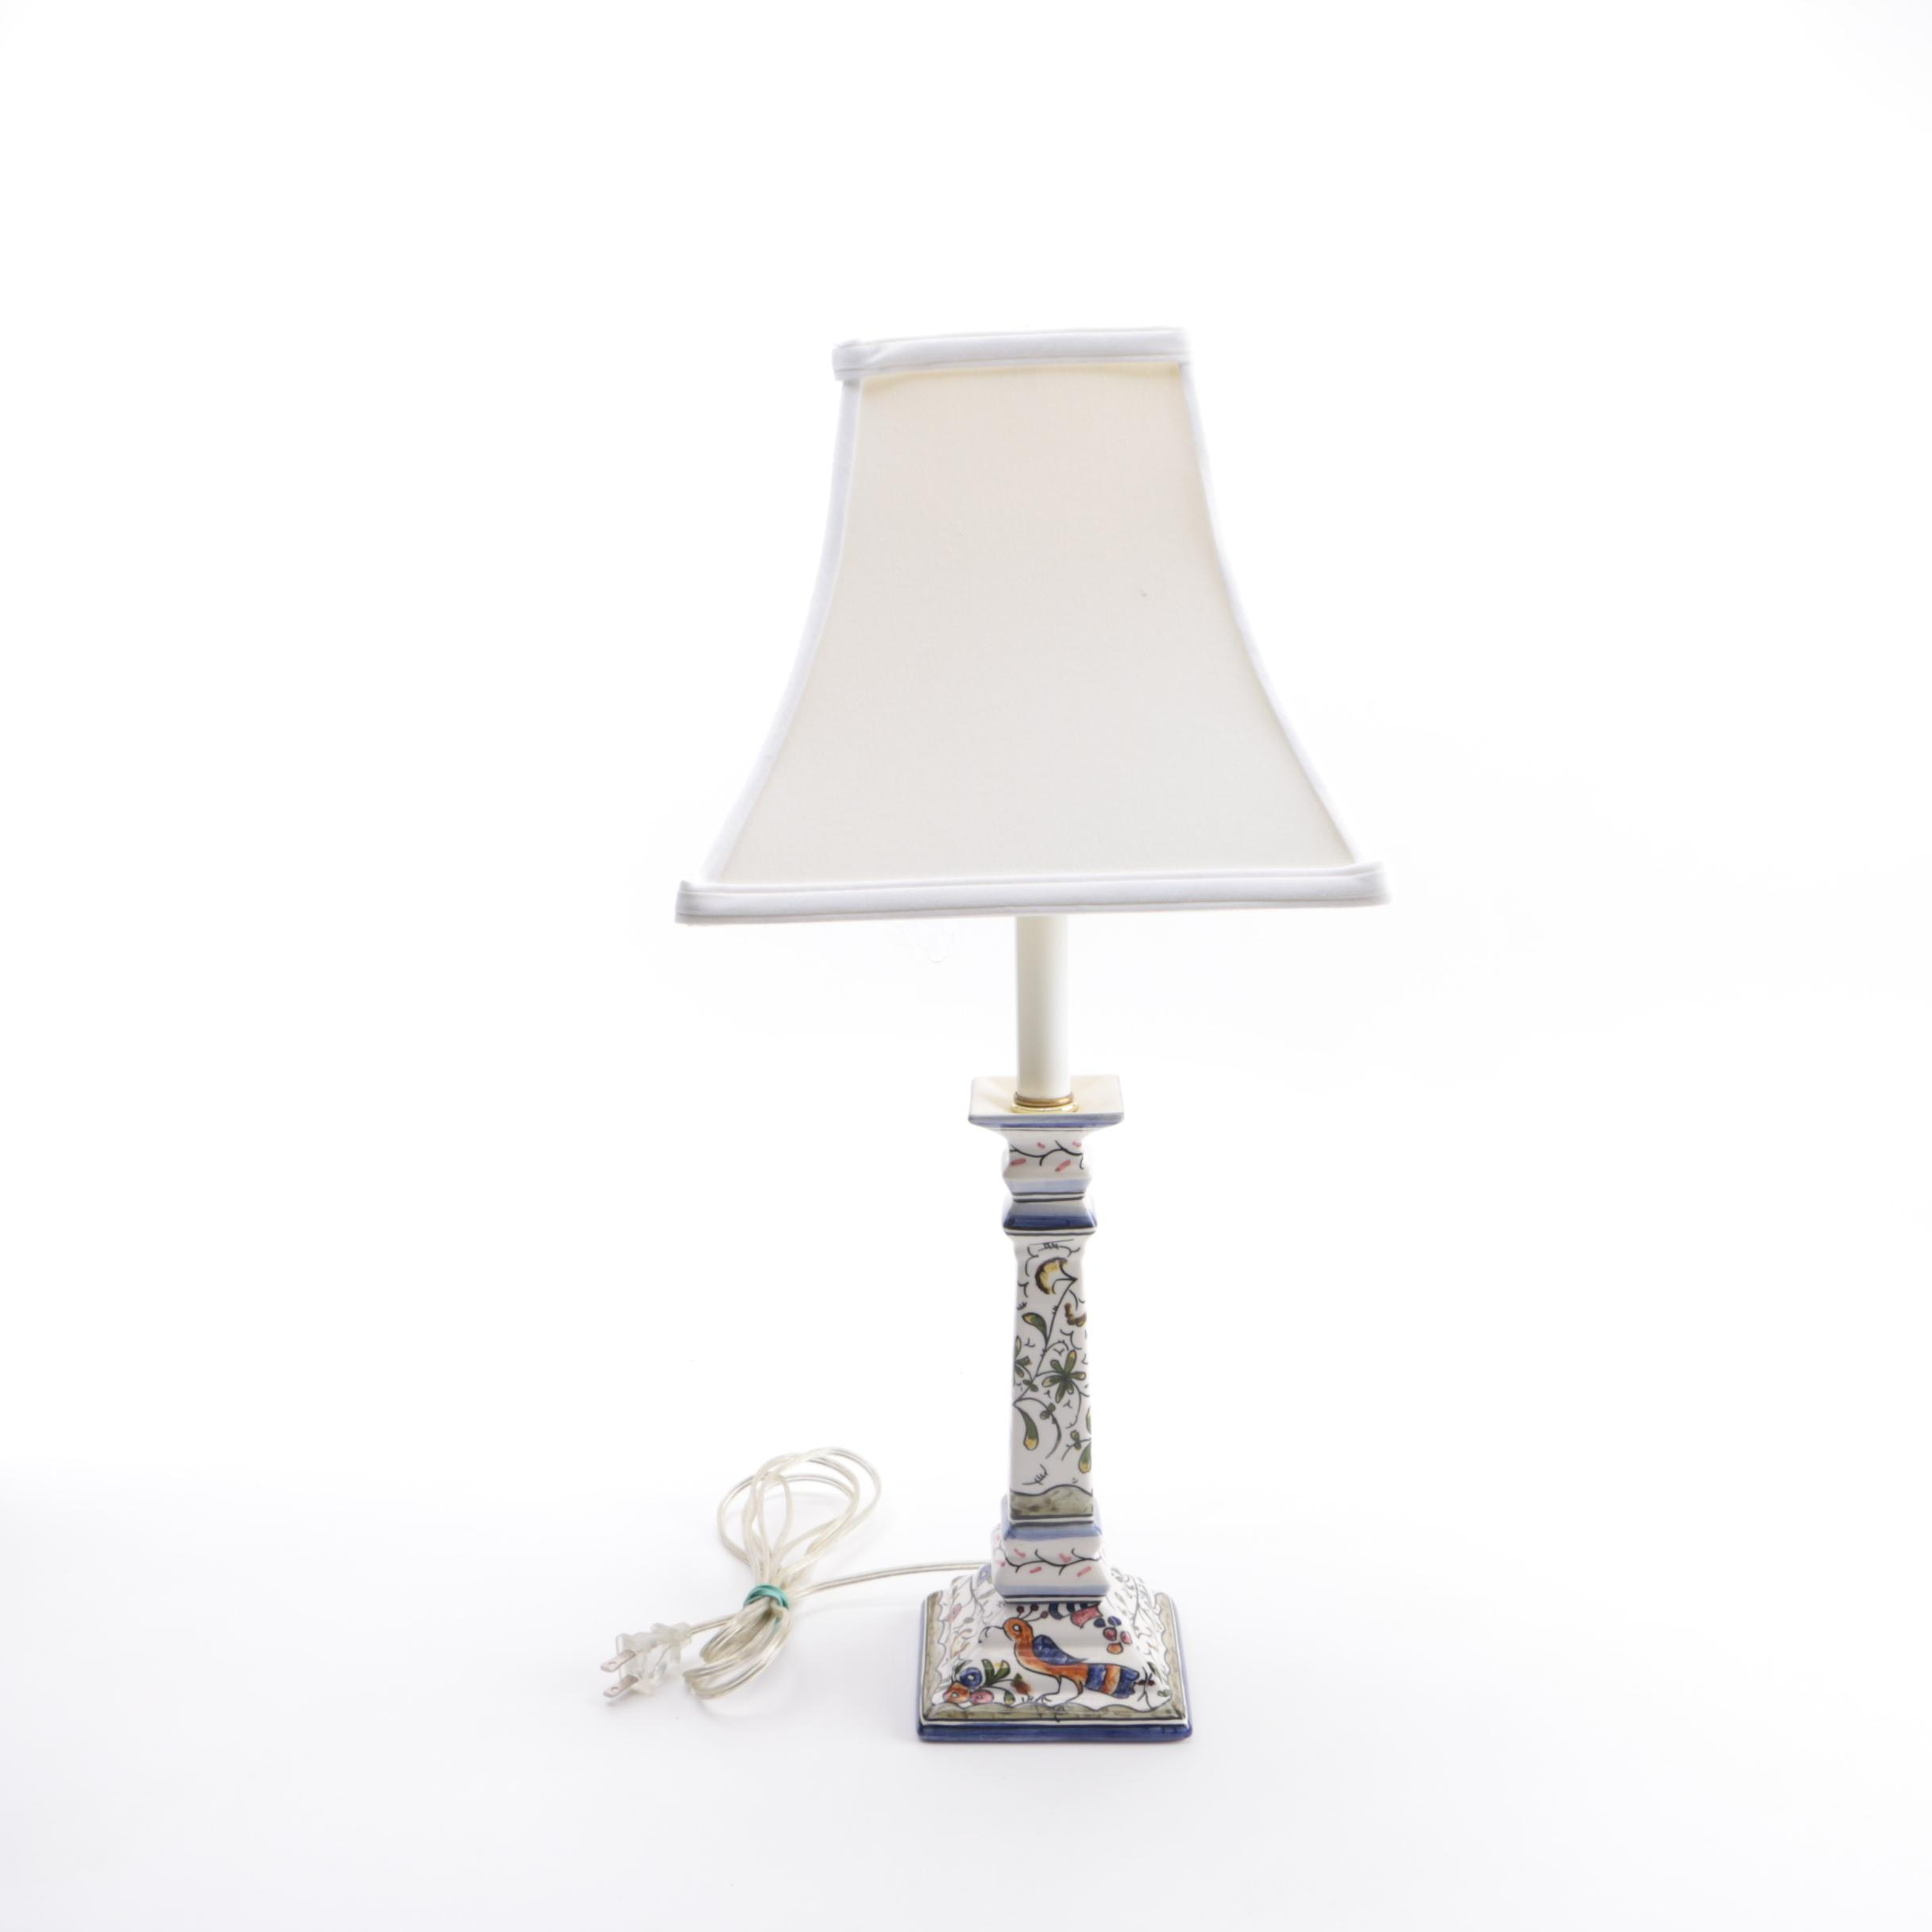 Hand-Painted Portuguese Ceramic Table Lamp